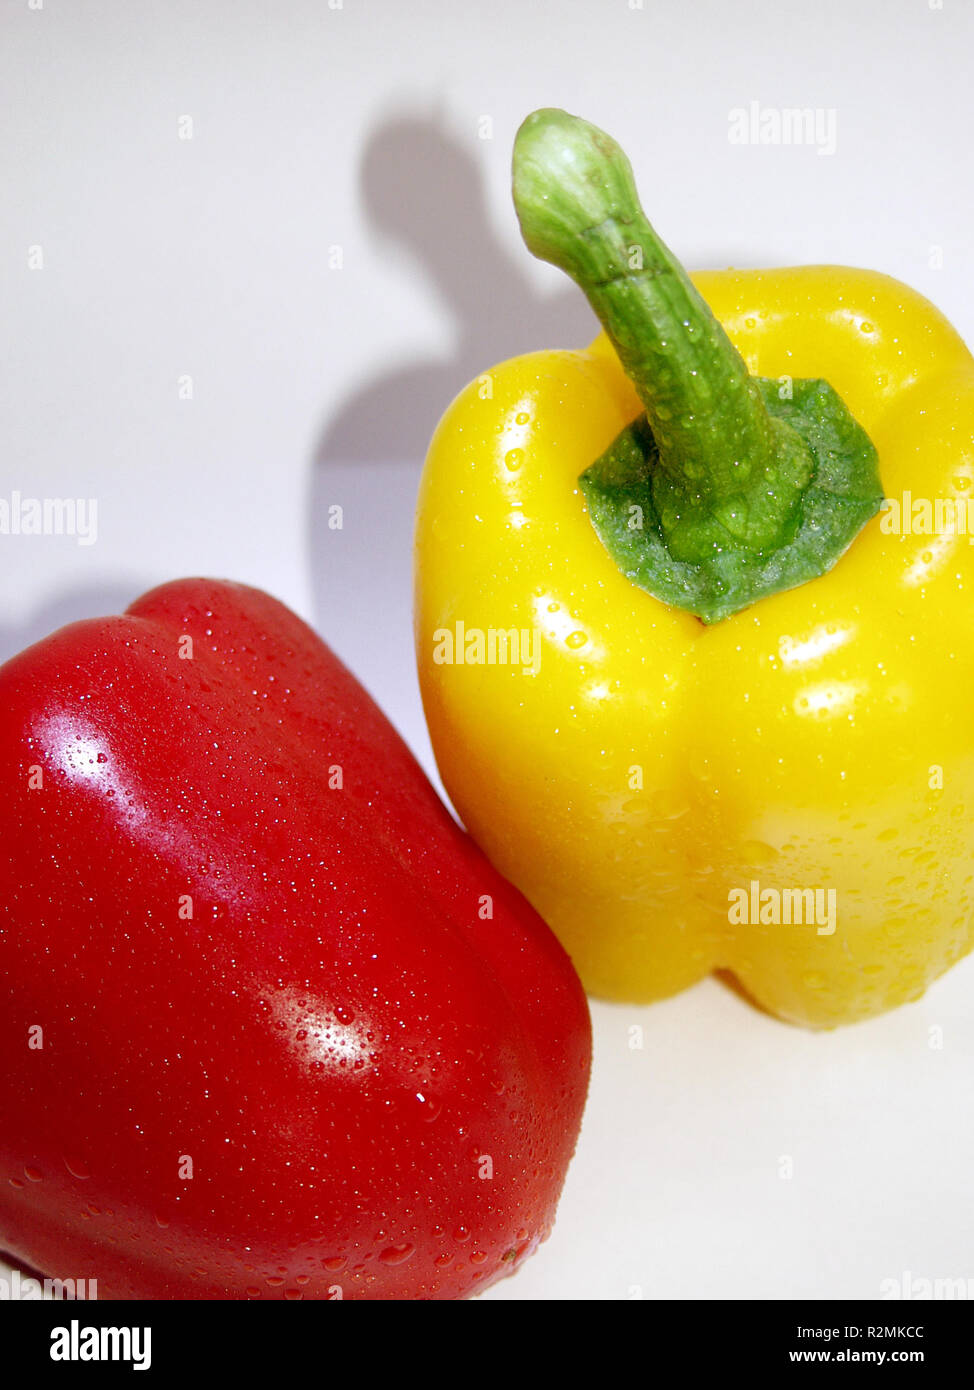 red and yellow paprika - Stock Image